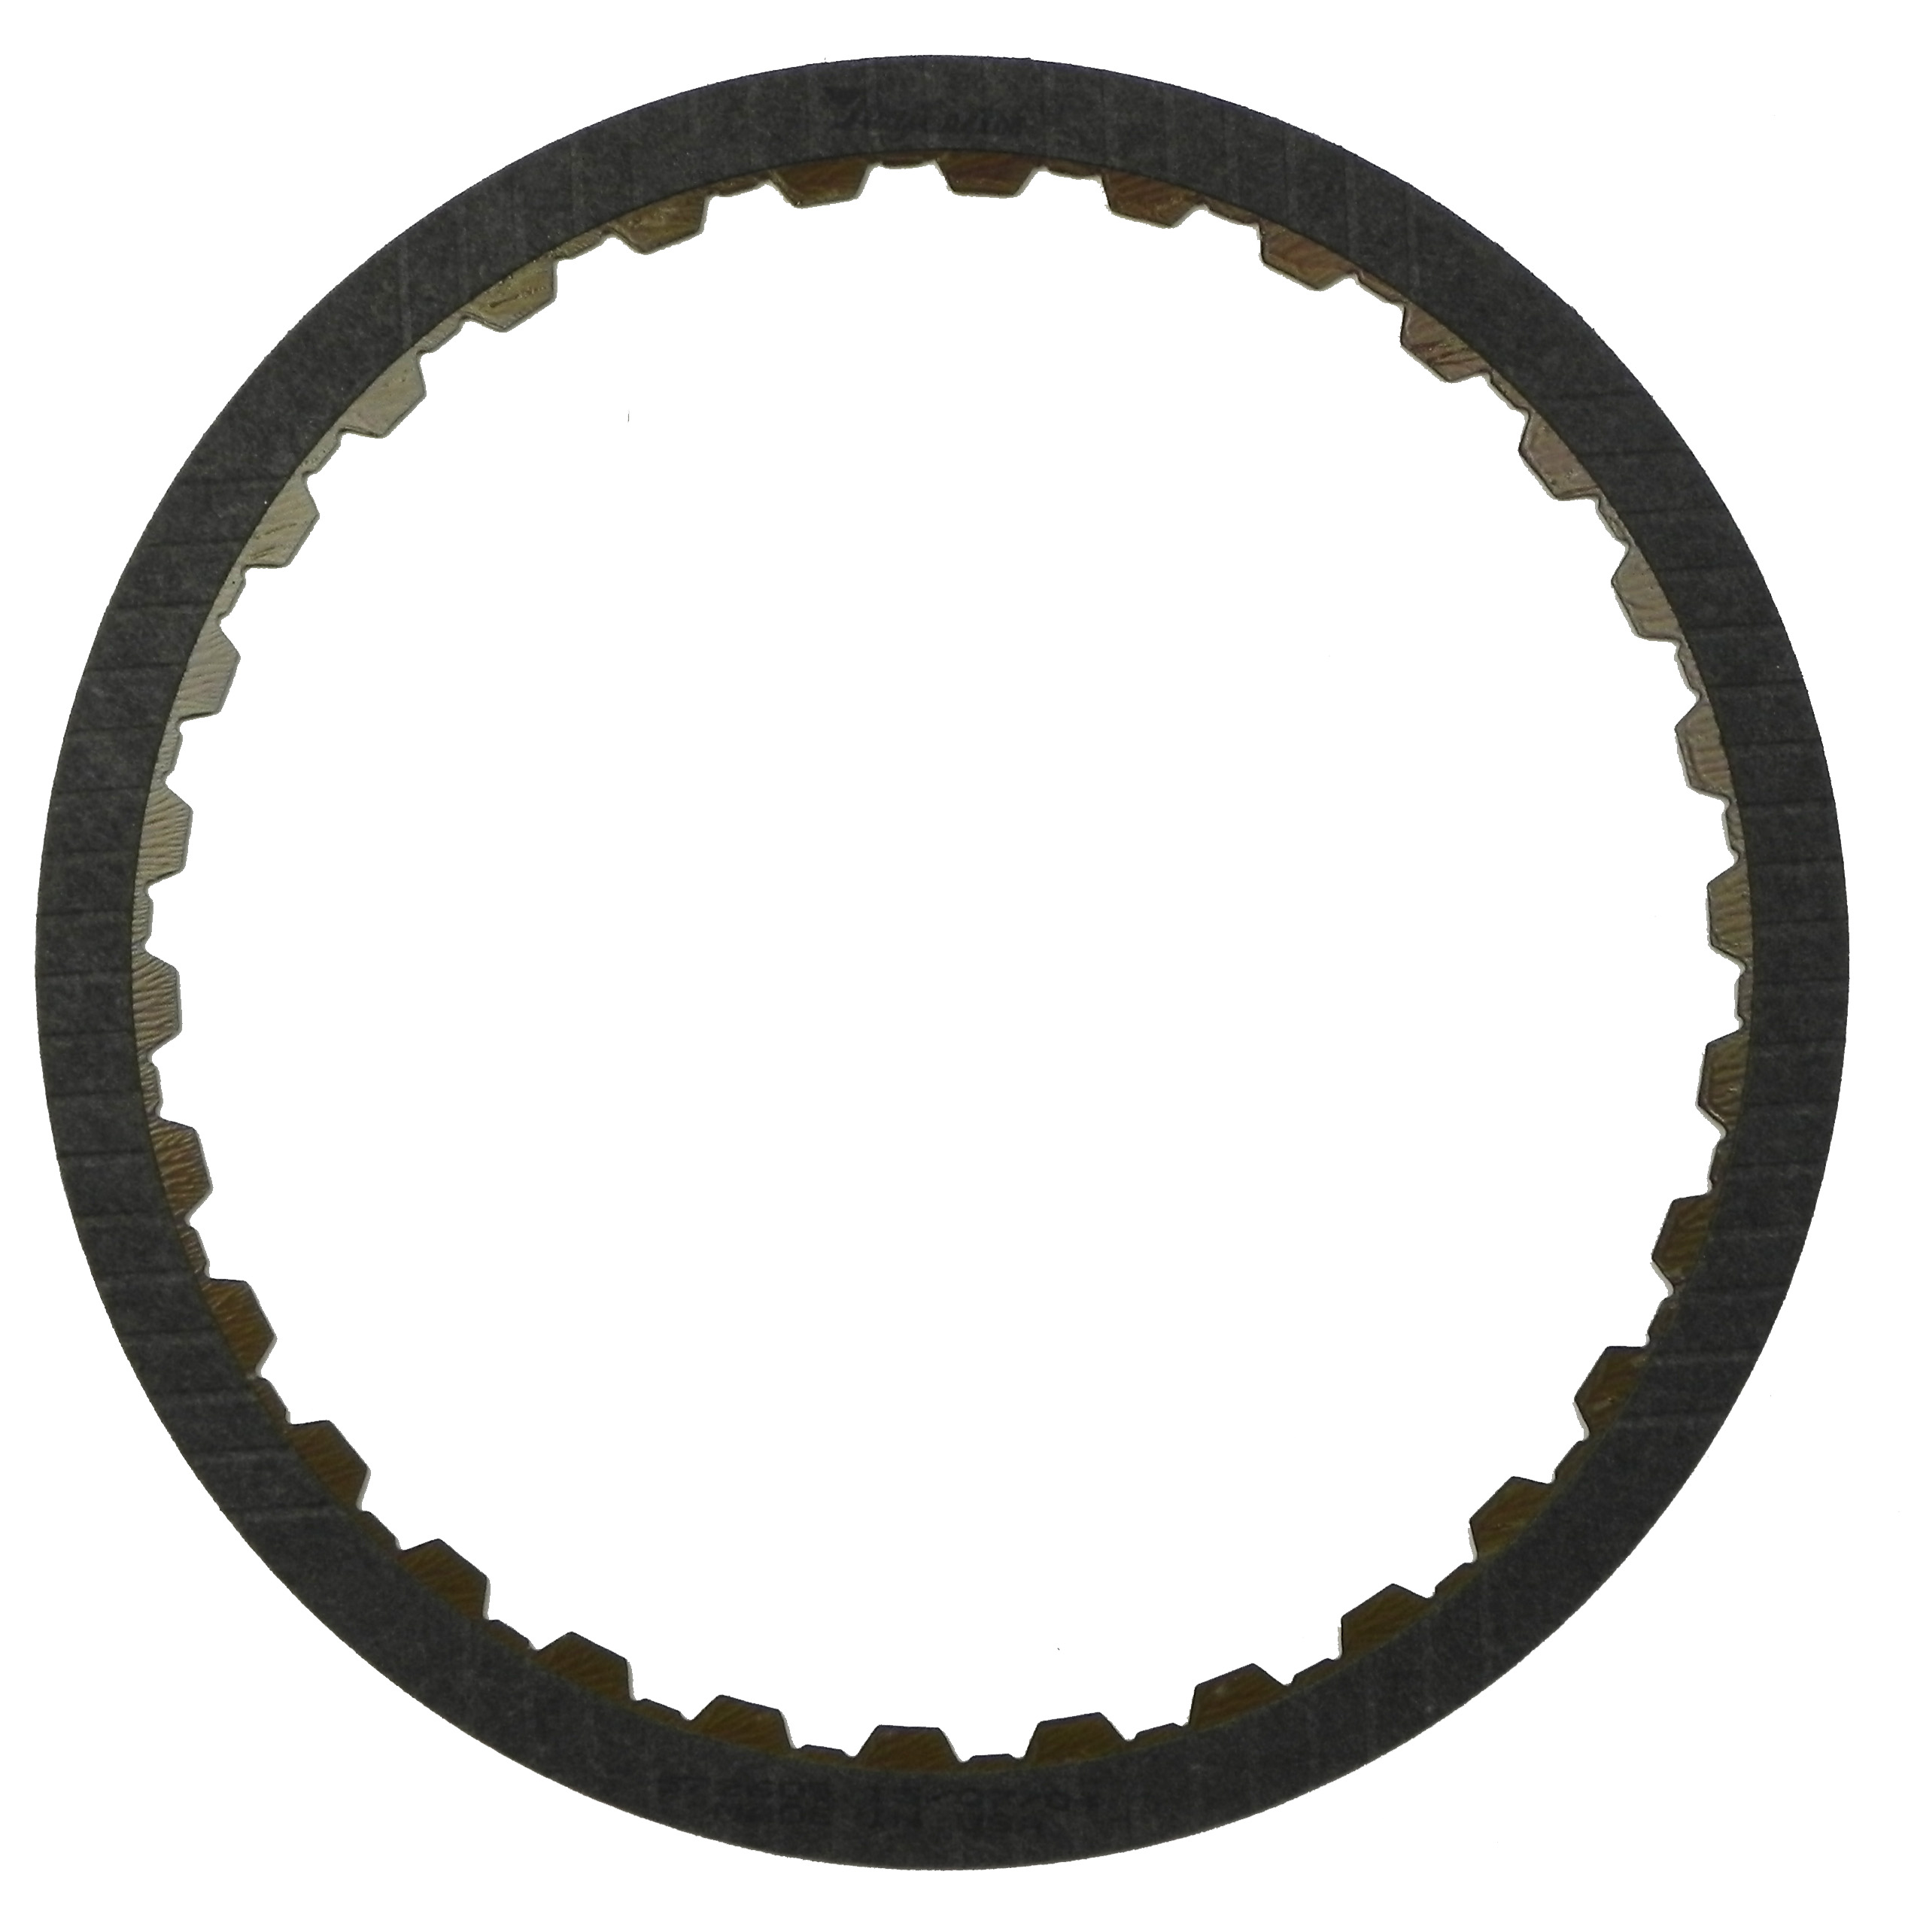 R572605 | 1996-2006 Friction Clutch Plate High Energy B1, K1 Clutch High Energy